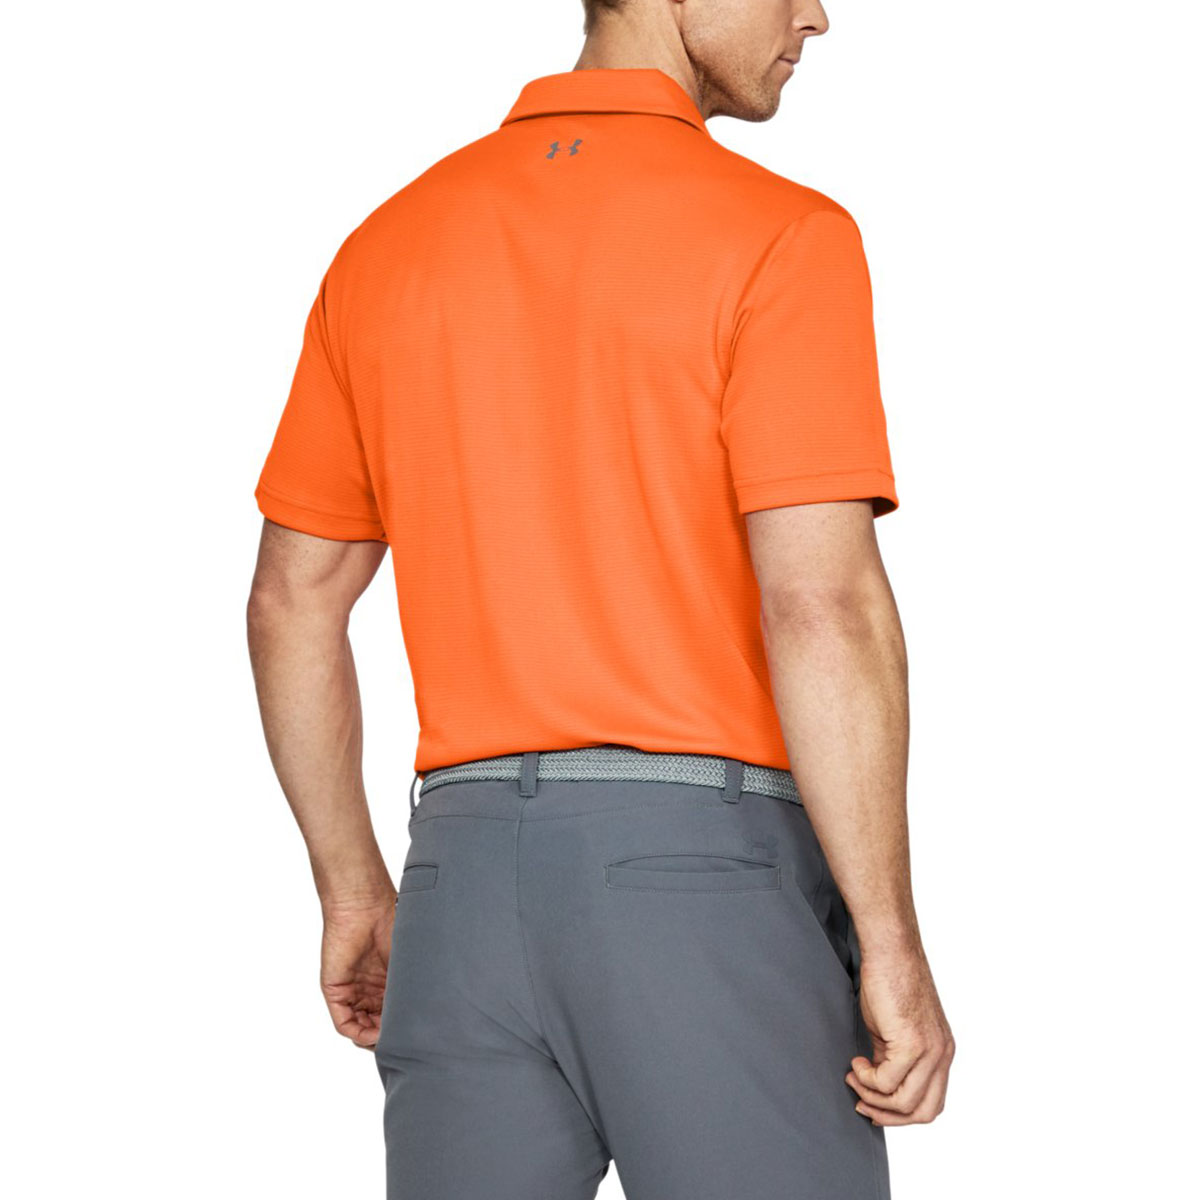 Under-Armour-Mens-2019-Golf-Tech-Wicking-Textured-Soft-Light-Polo-Shirt thumbnail 79